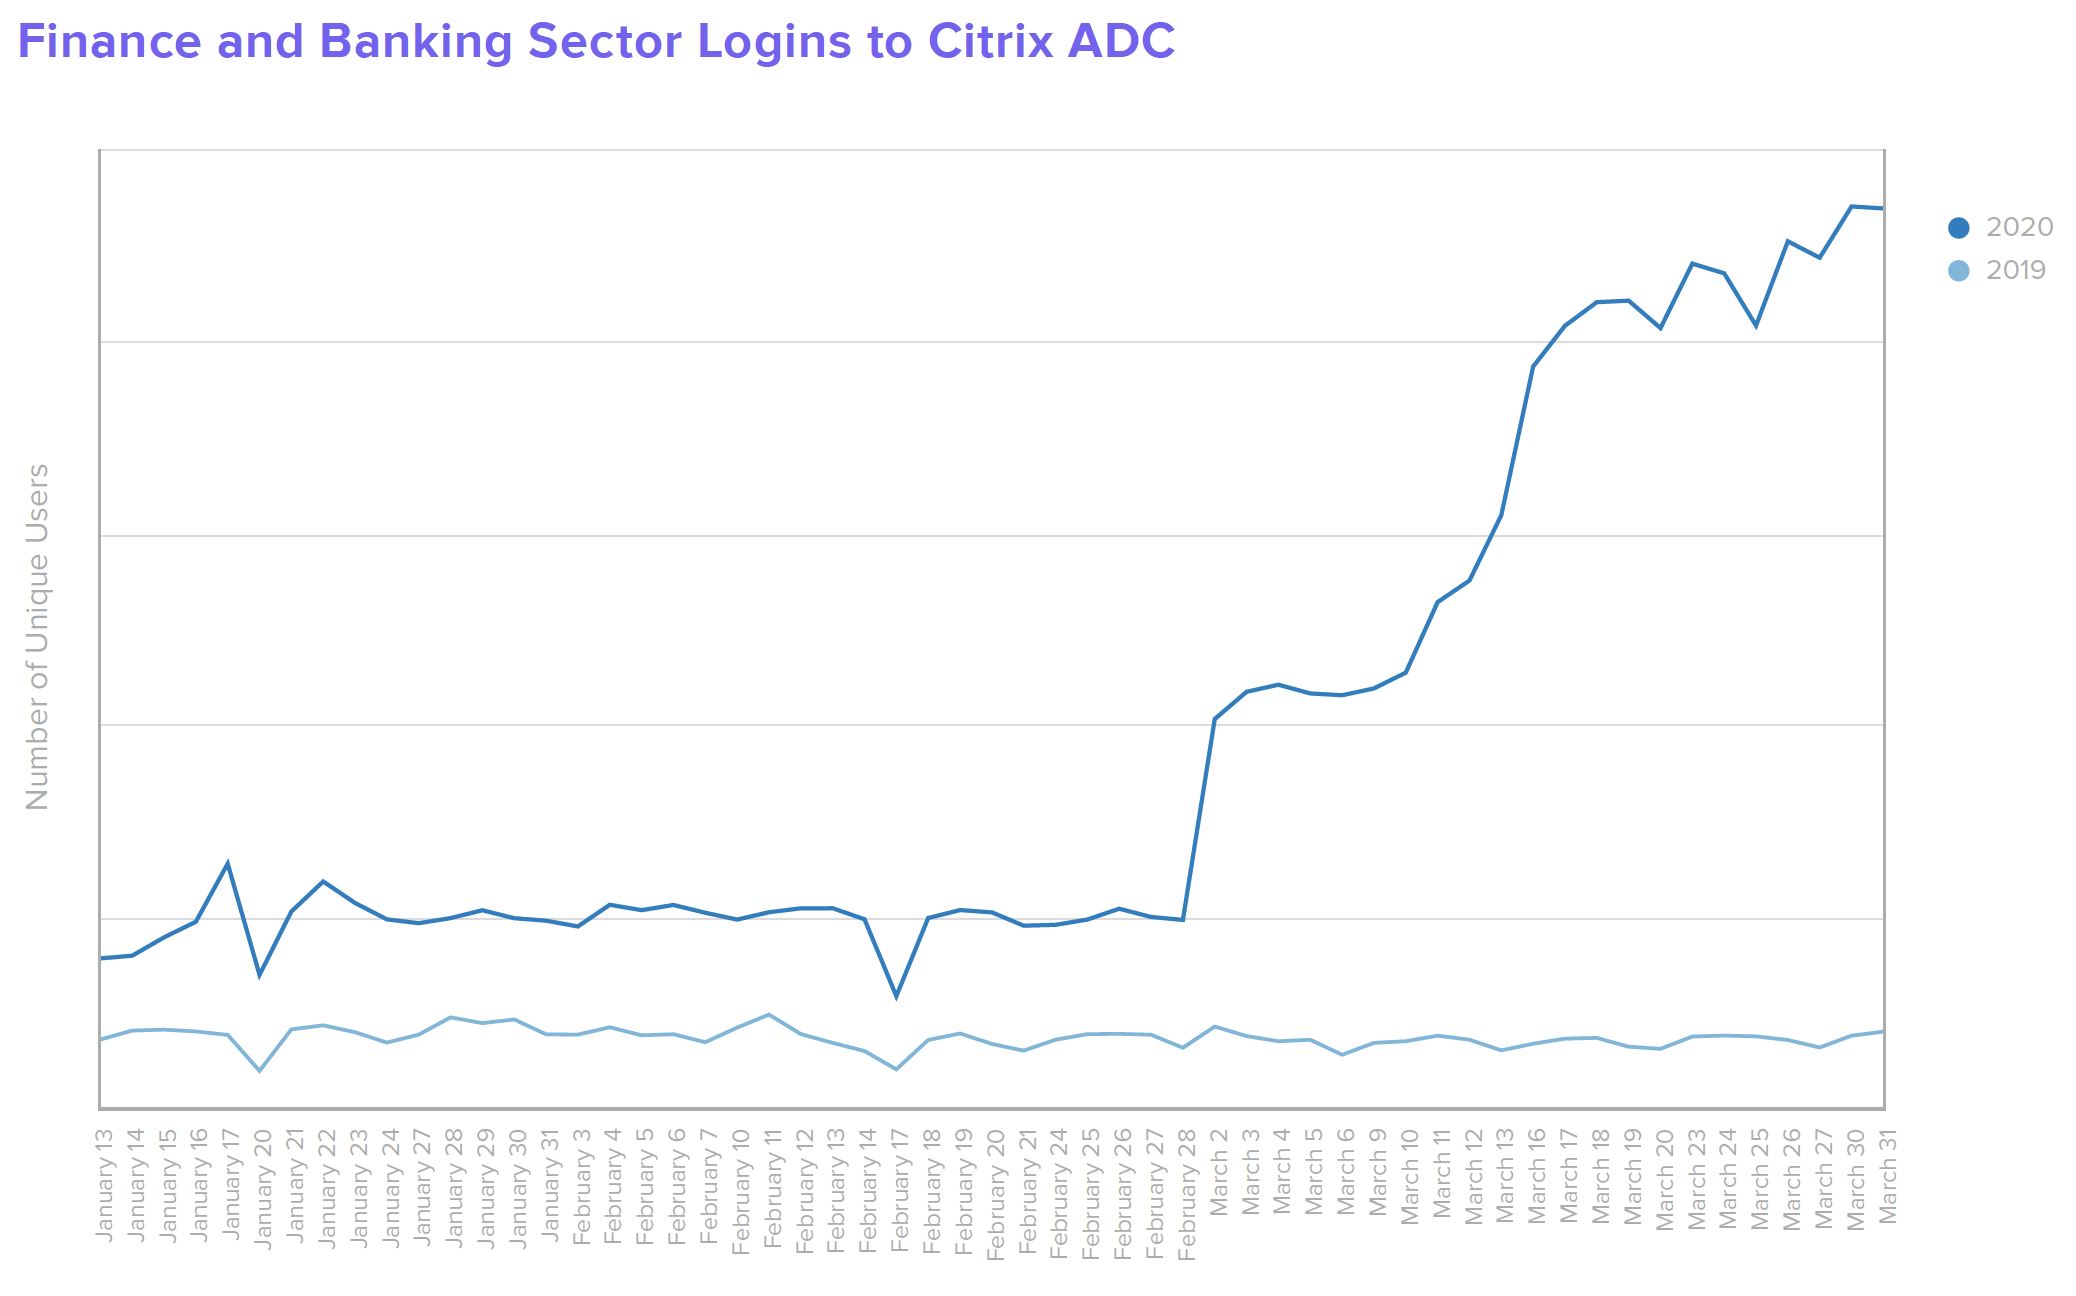 B W Finance Finance and Banking Sector Logins to Citrix ADC